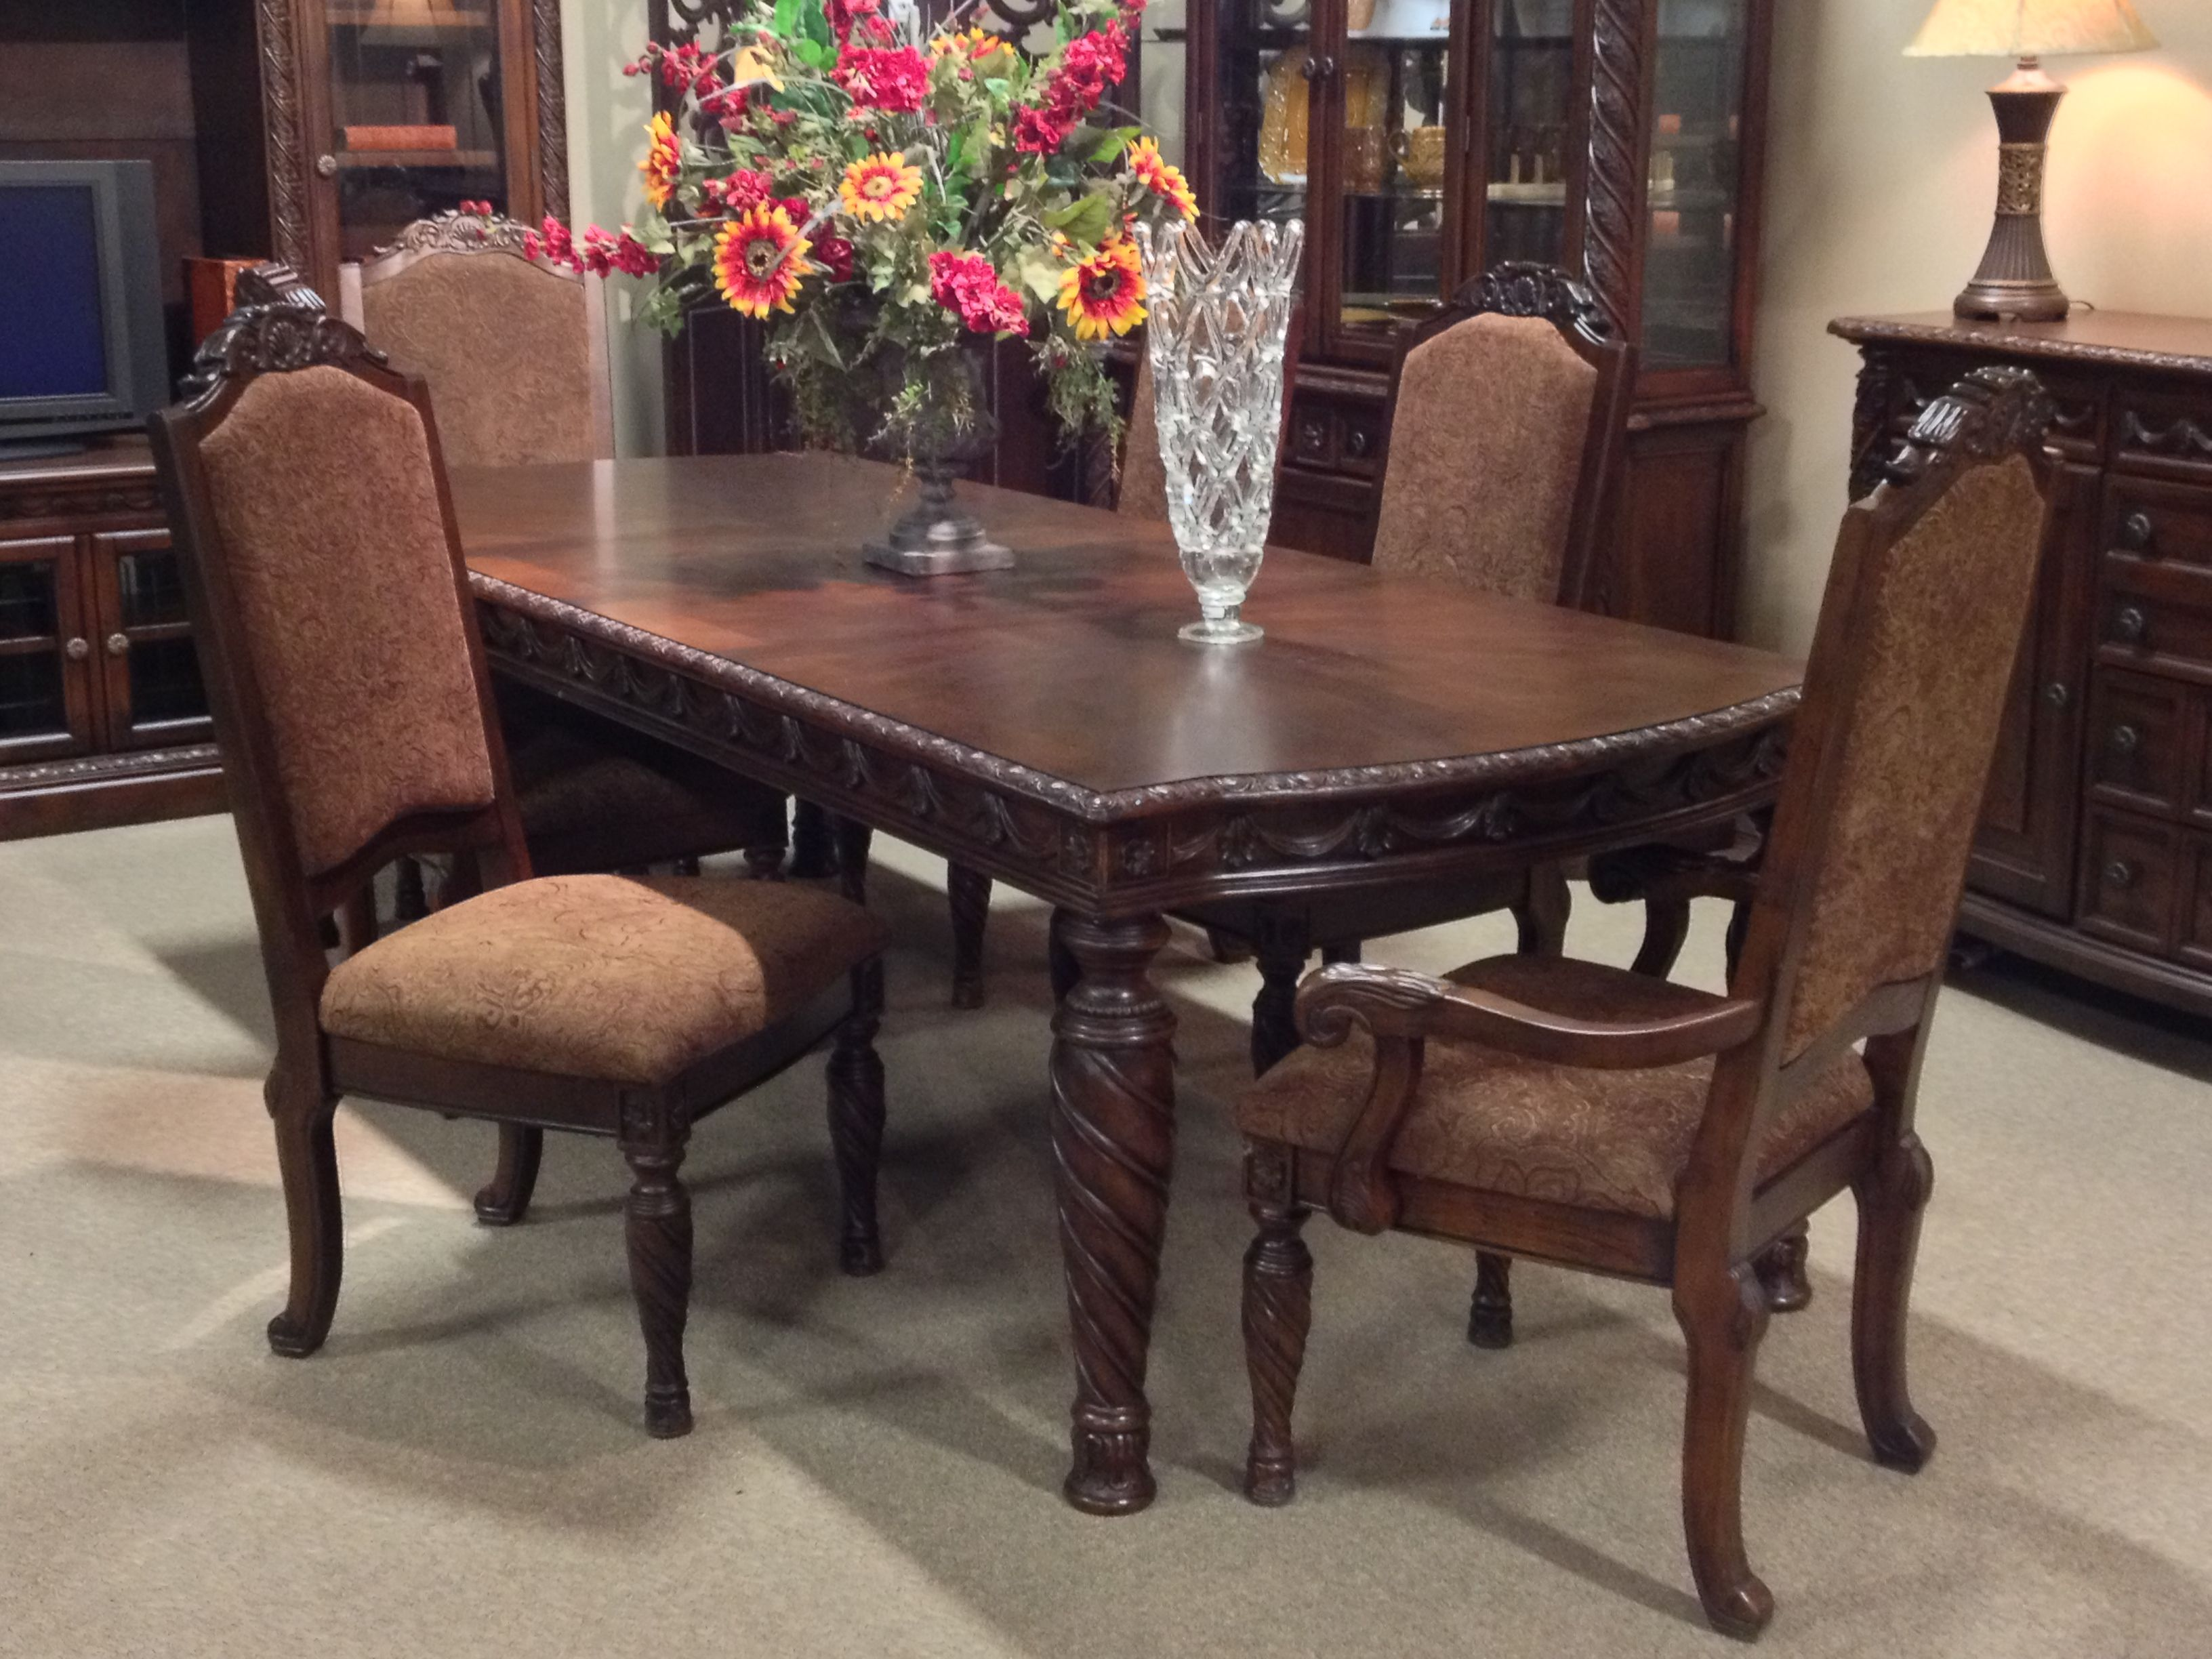 North Shore 7 Piece Dining Room Set At Ashley Furniture